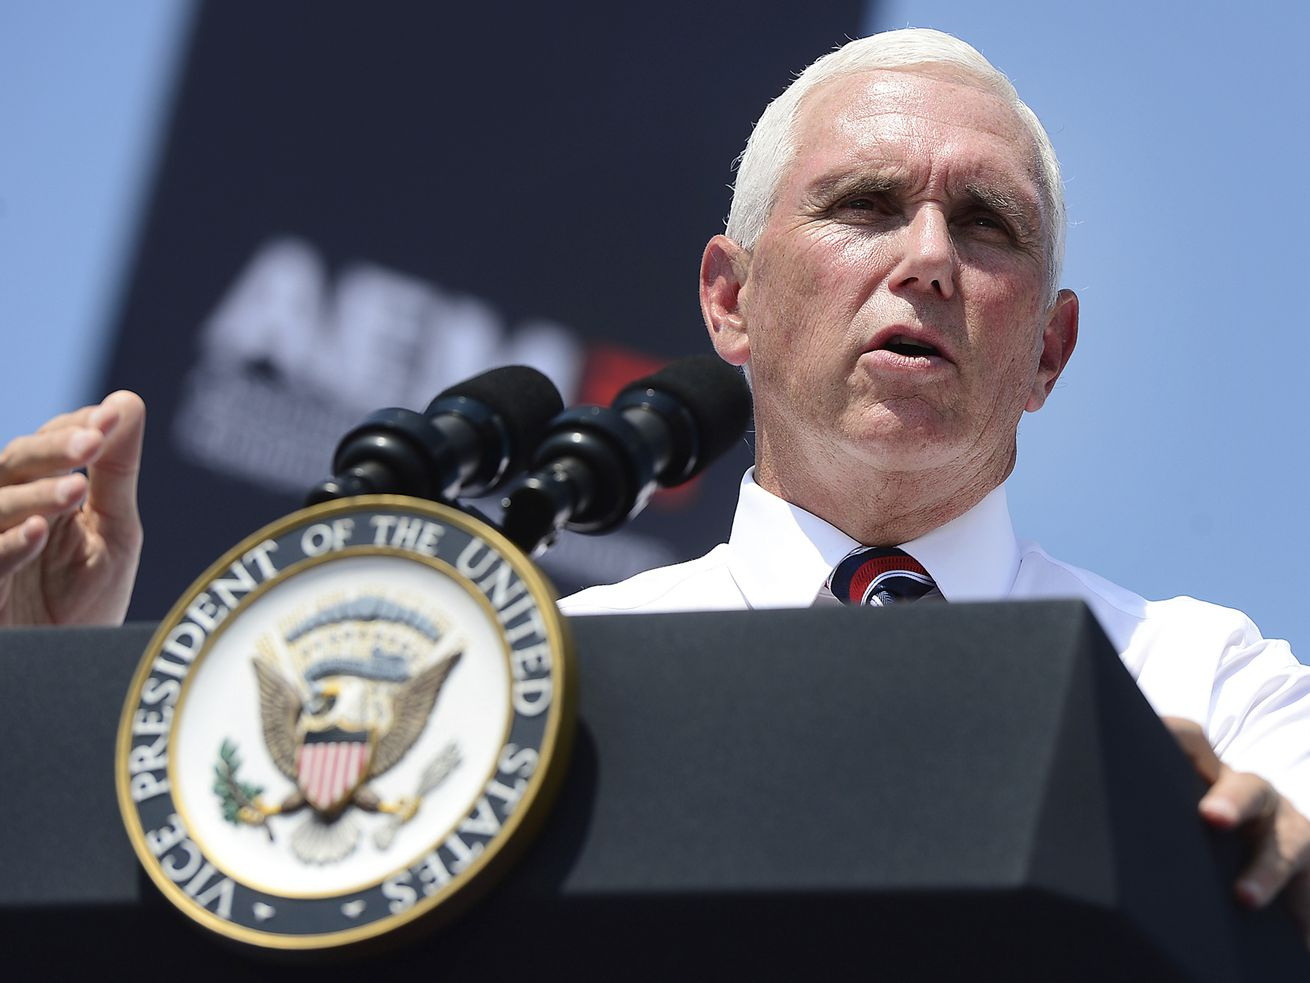 Vice President Mike Pence expected to be in Utah next week to speak on trade